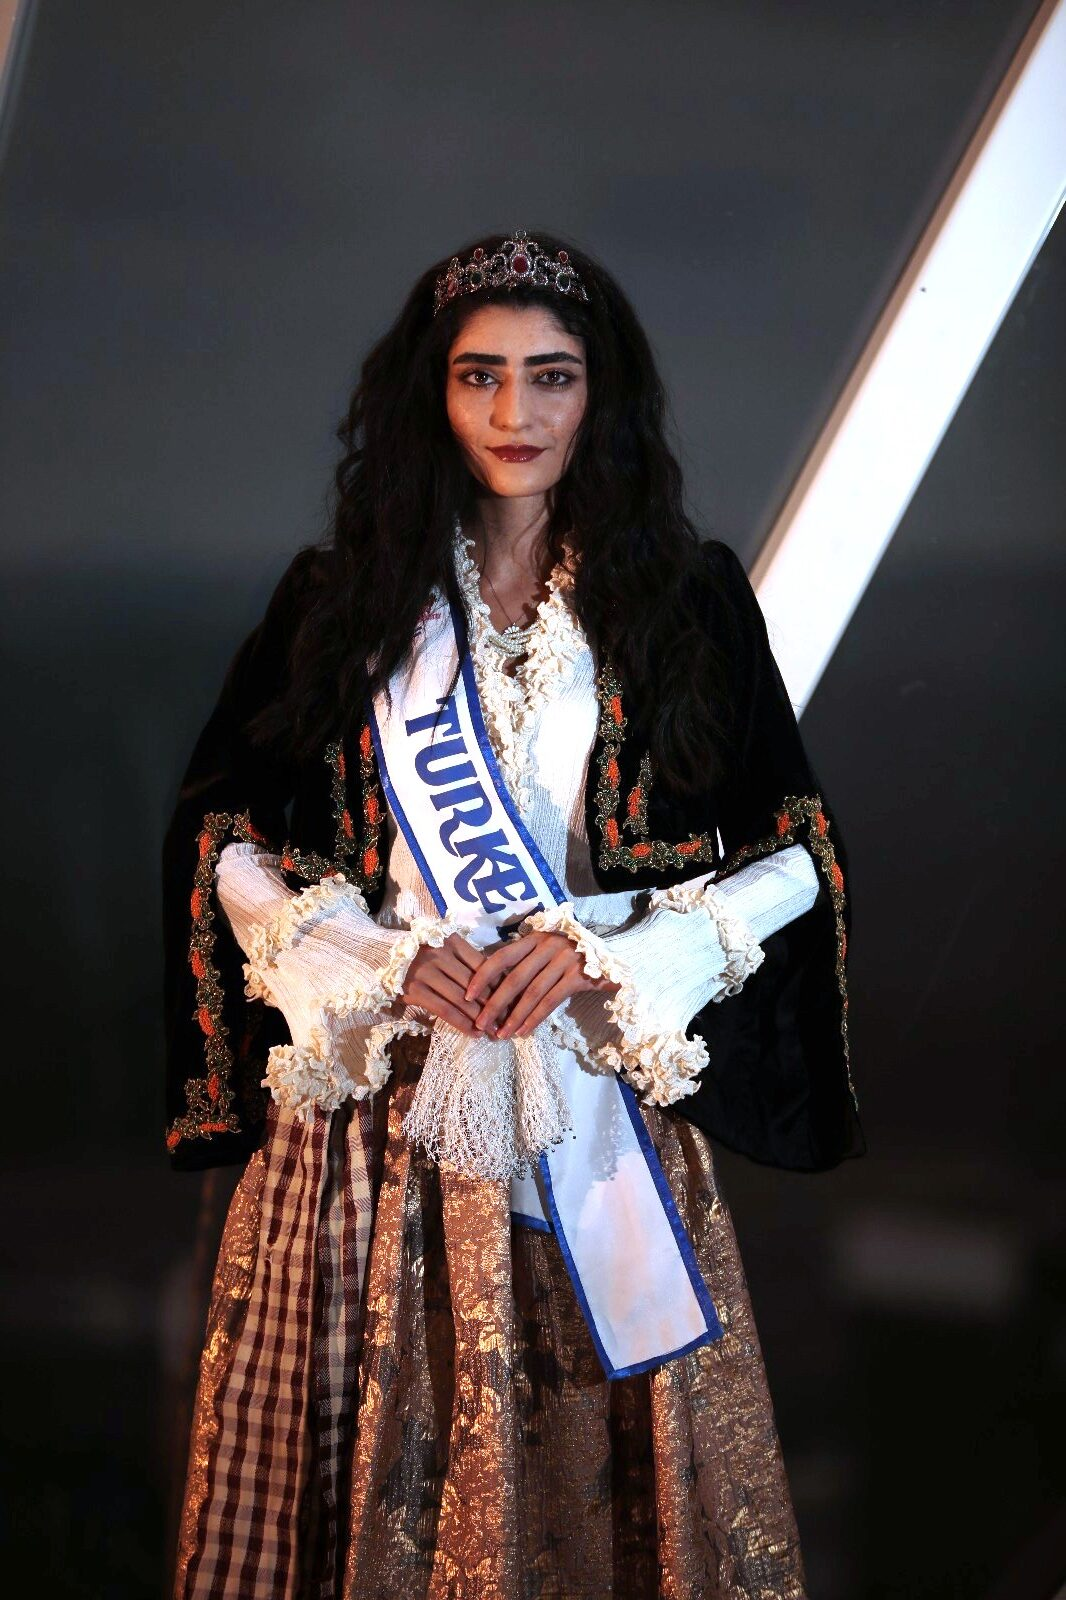 Melissa Aslan Miss Choice Of The People 2020 Seçildi